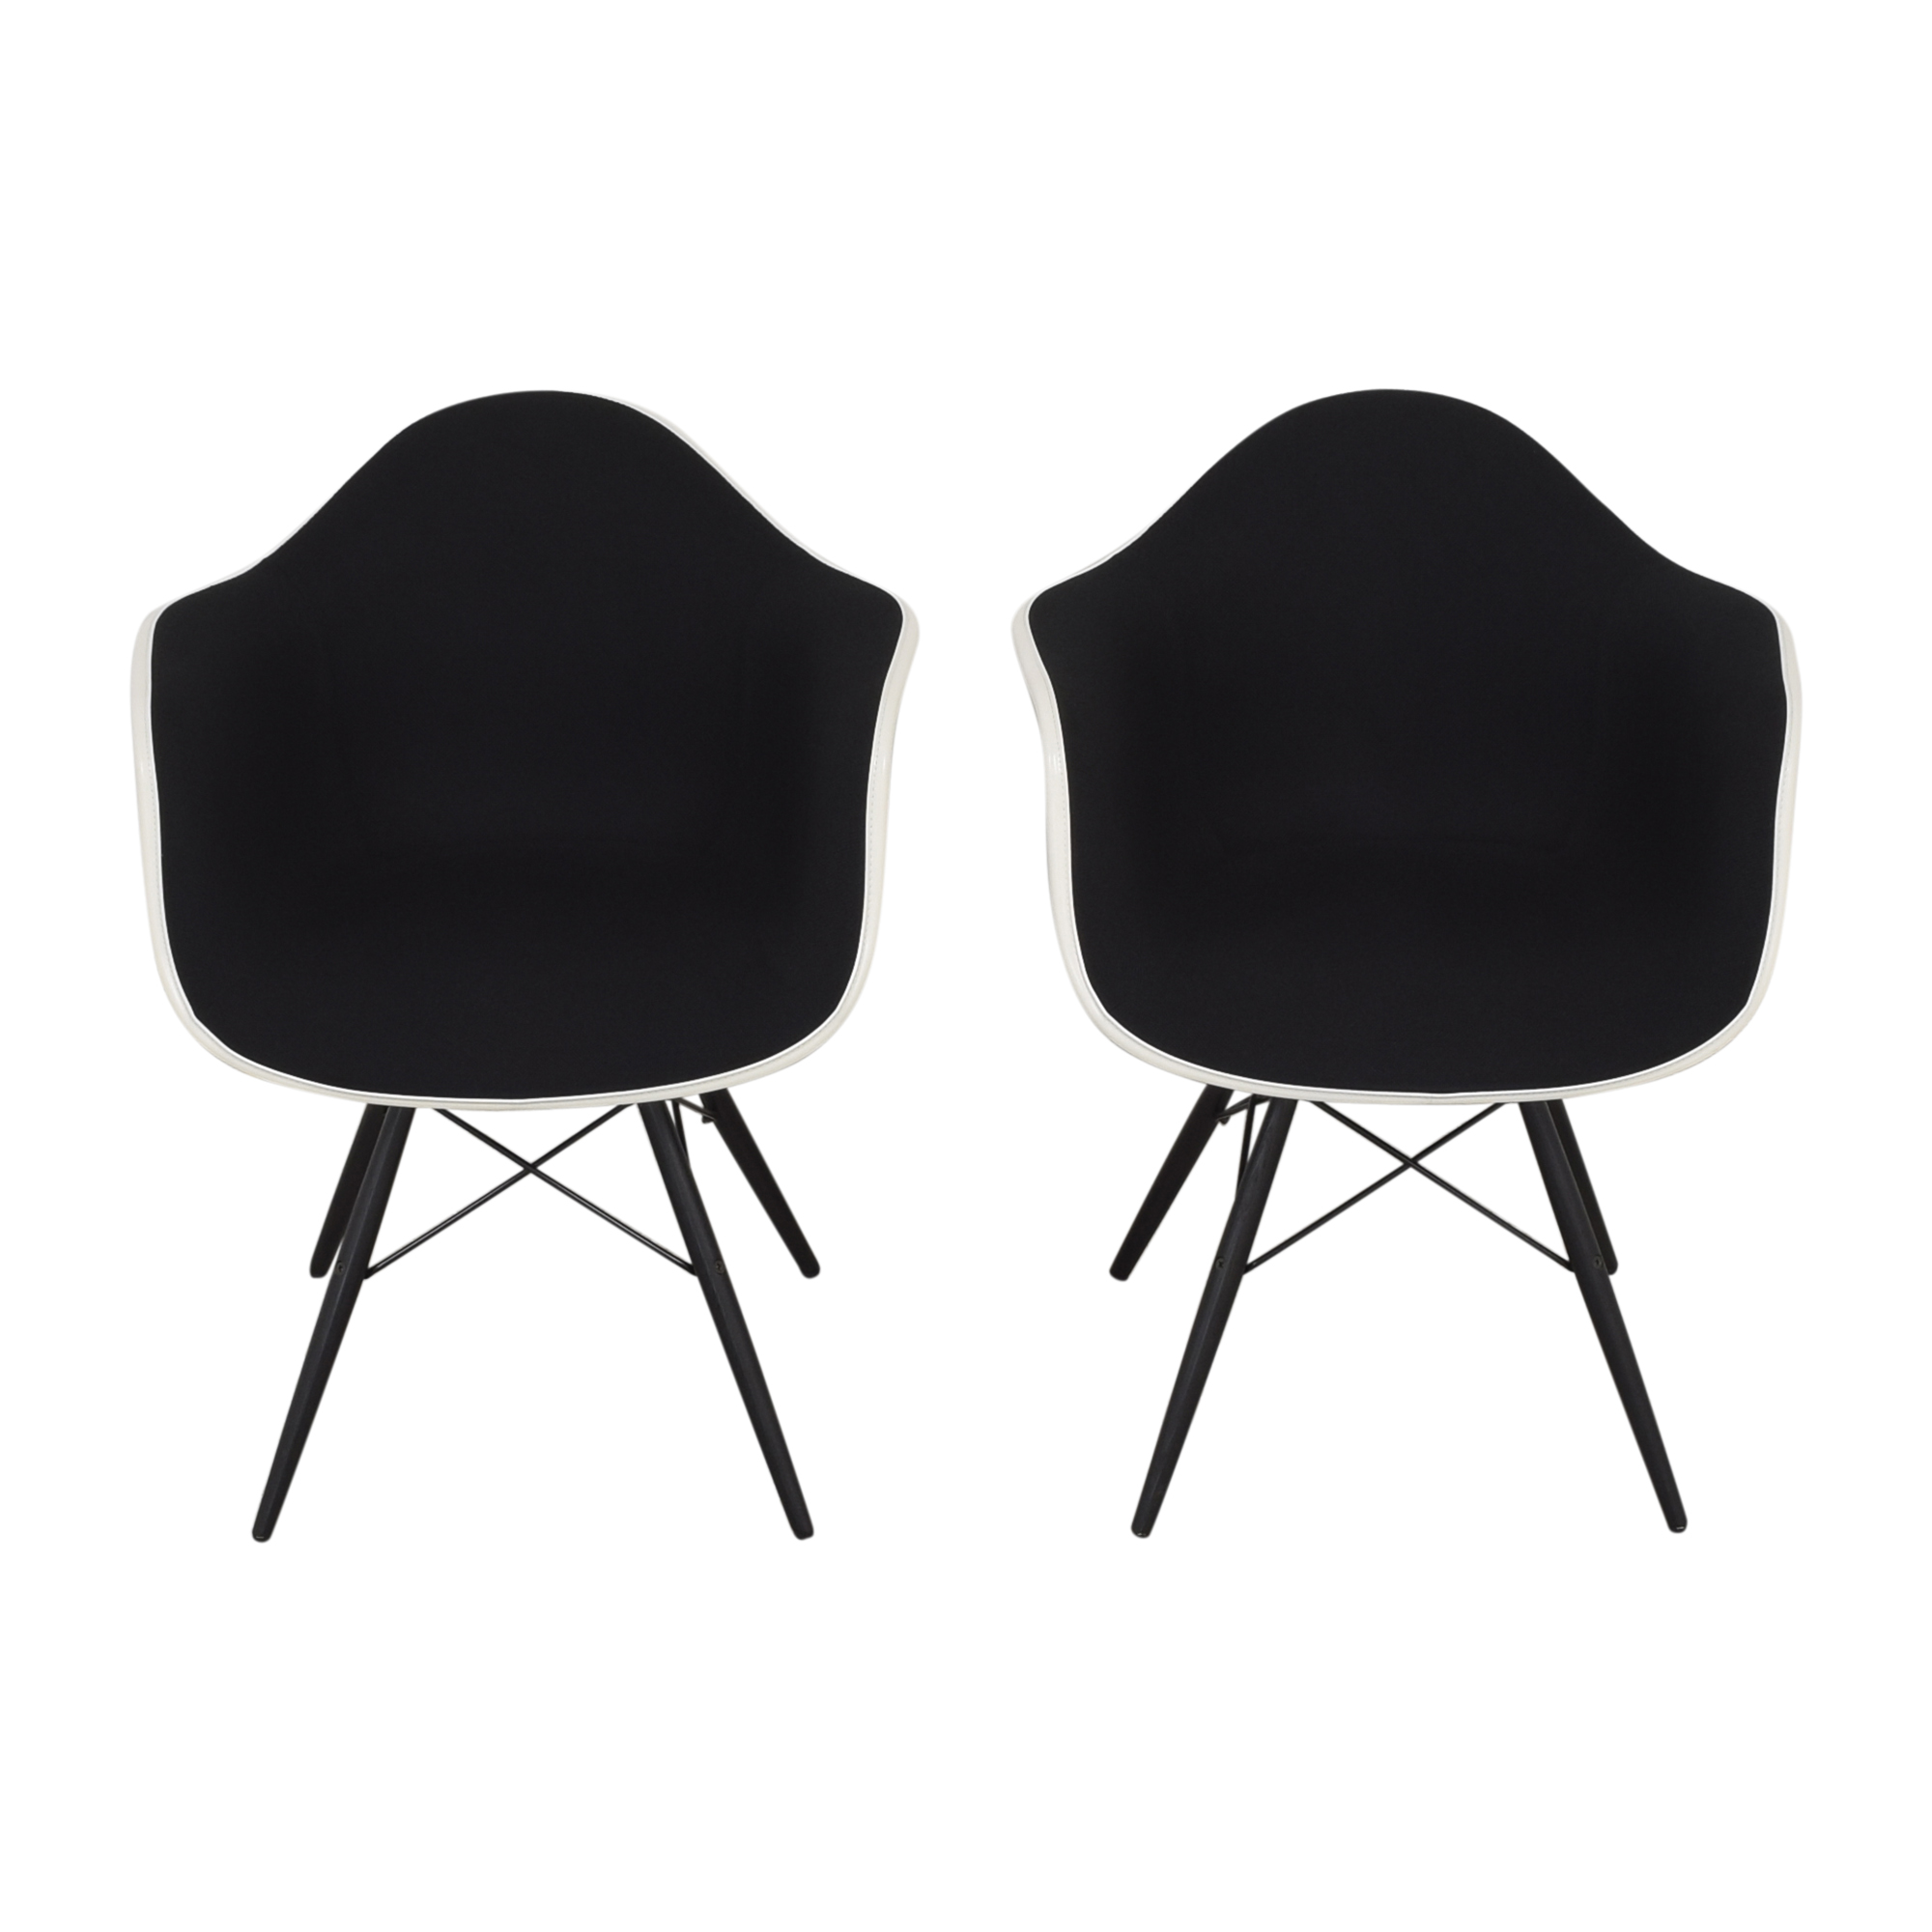 Herman Miller Herman Miller Eames Molded Arm Chairs coupon